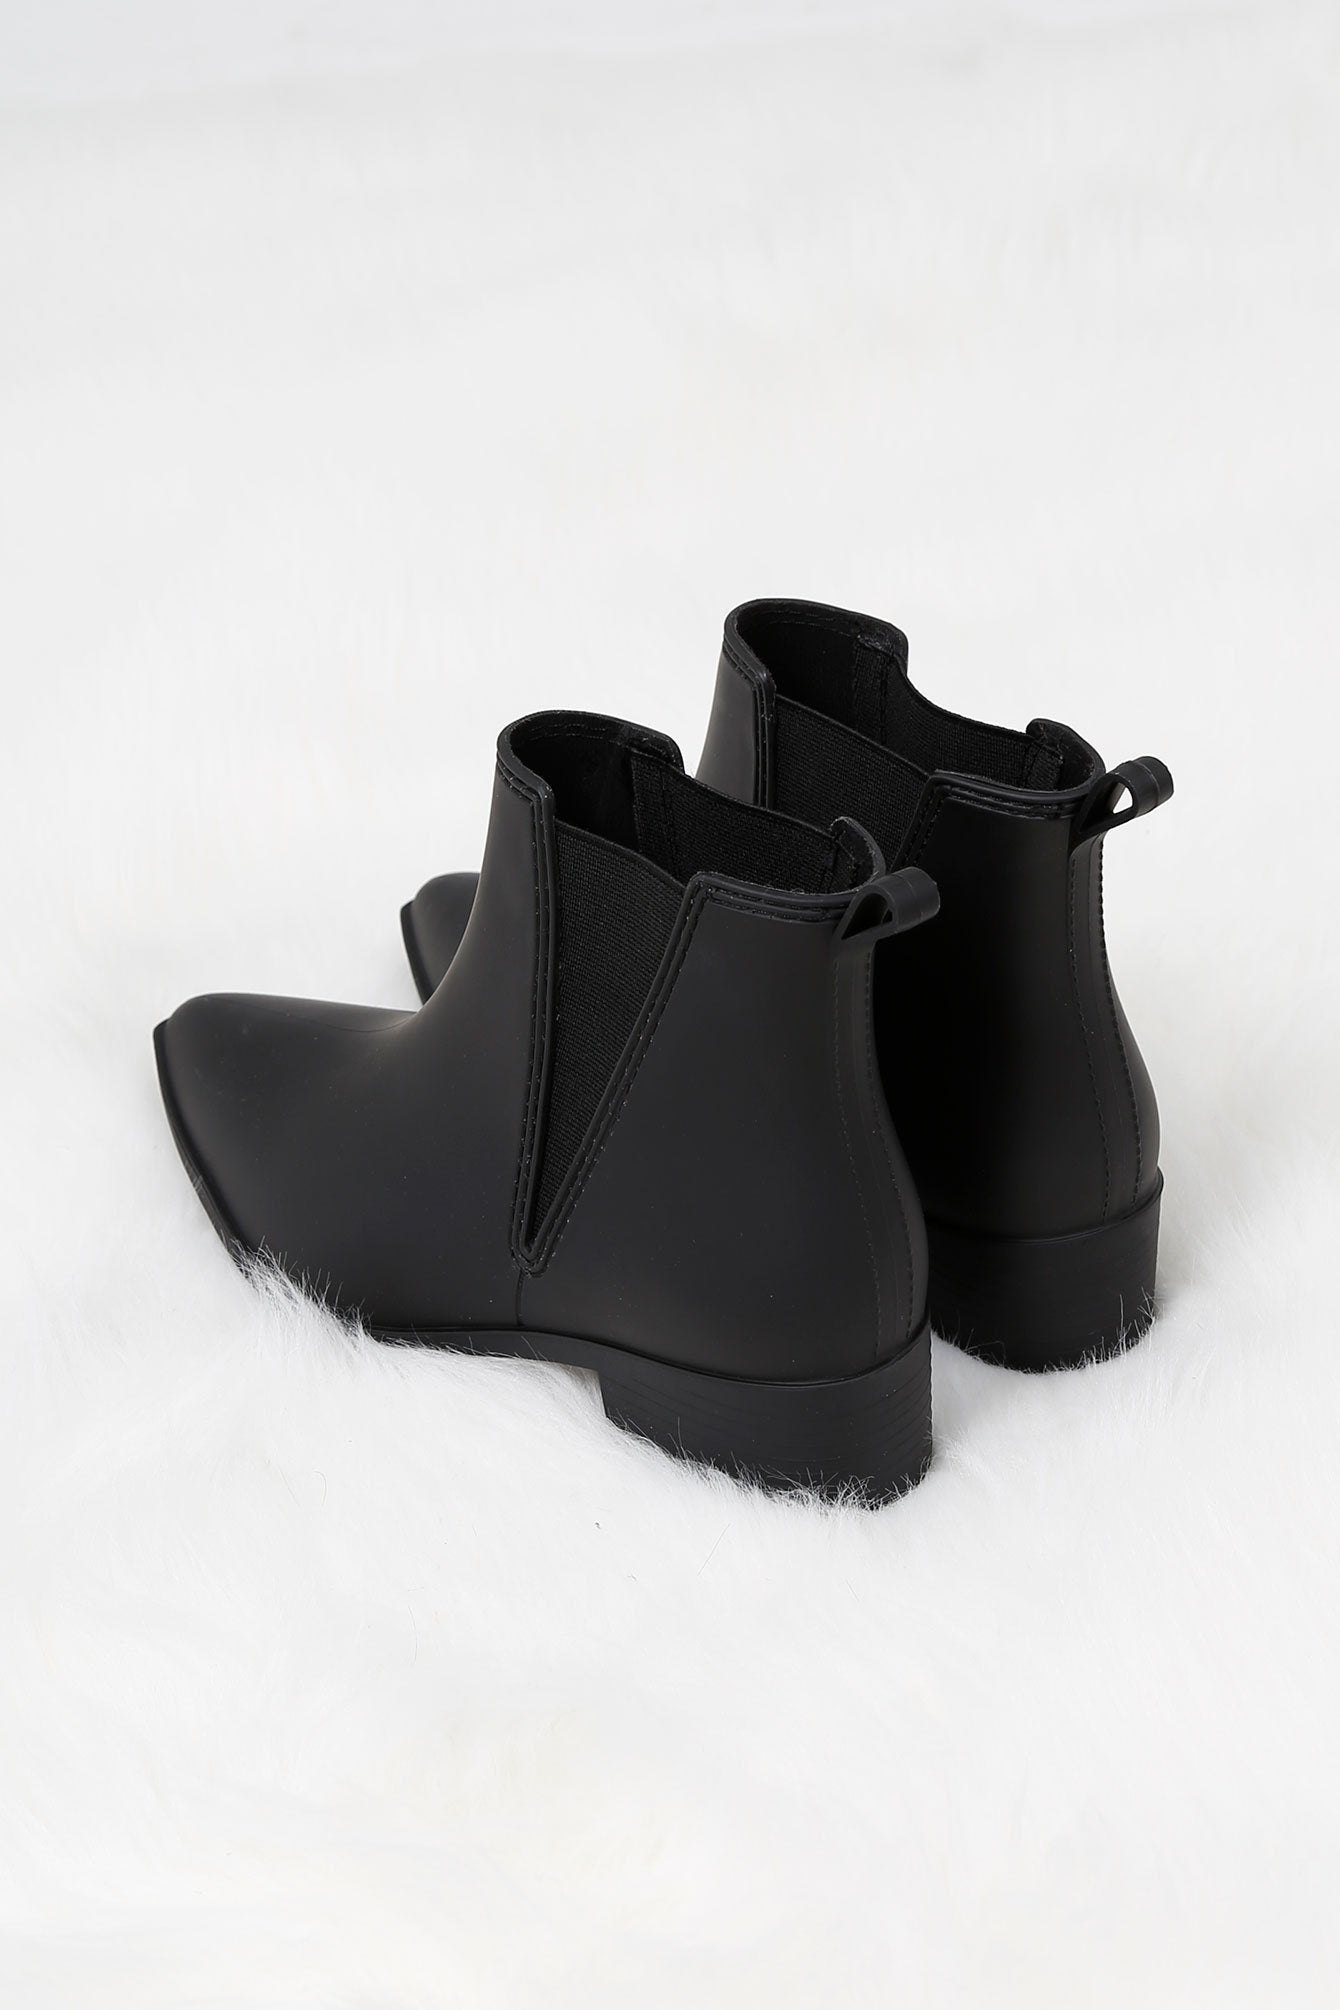 JEFFREY CAMPBELL | Mist Rainboot - Black